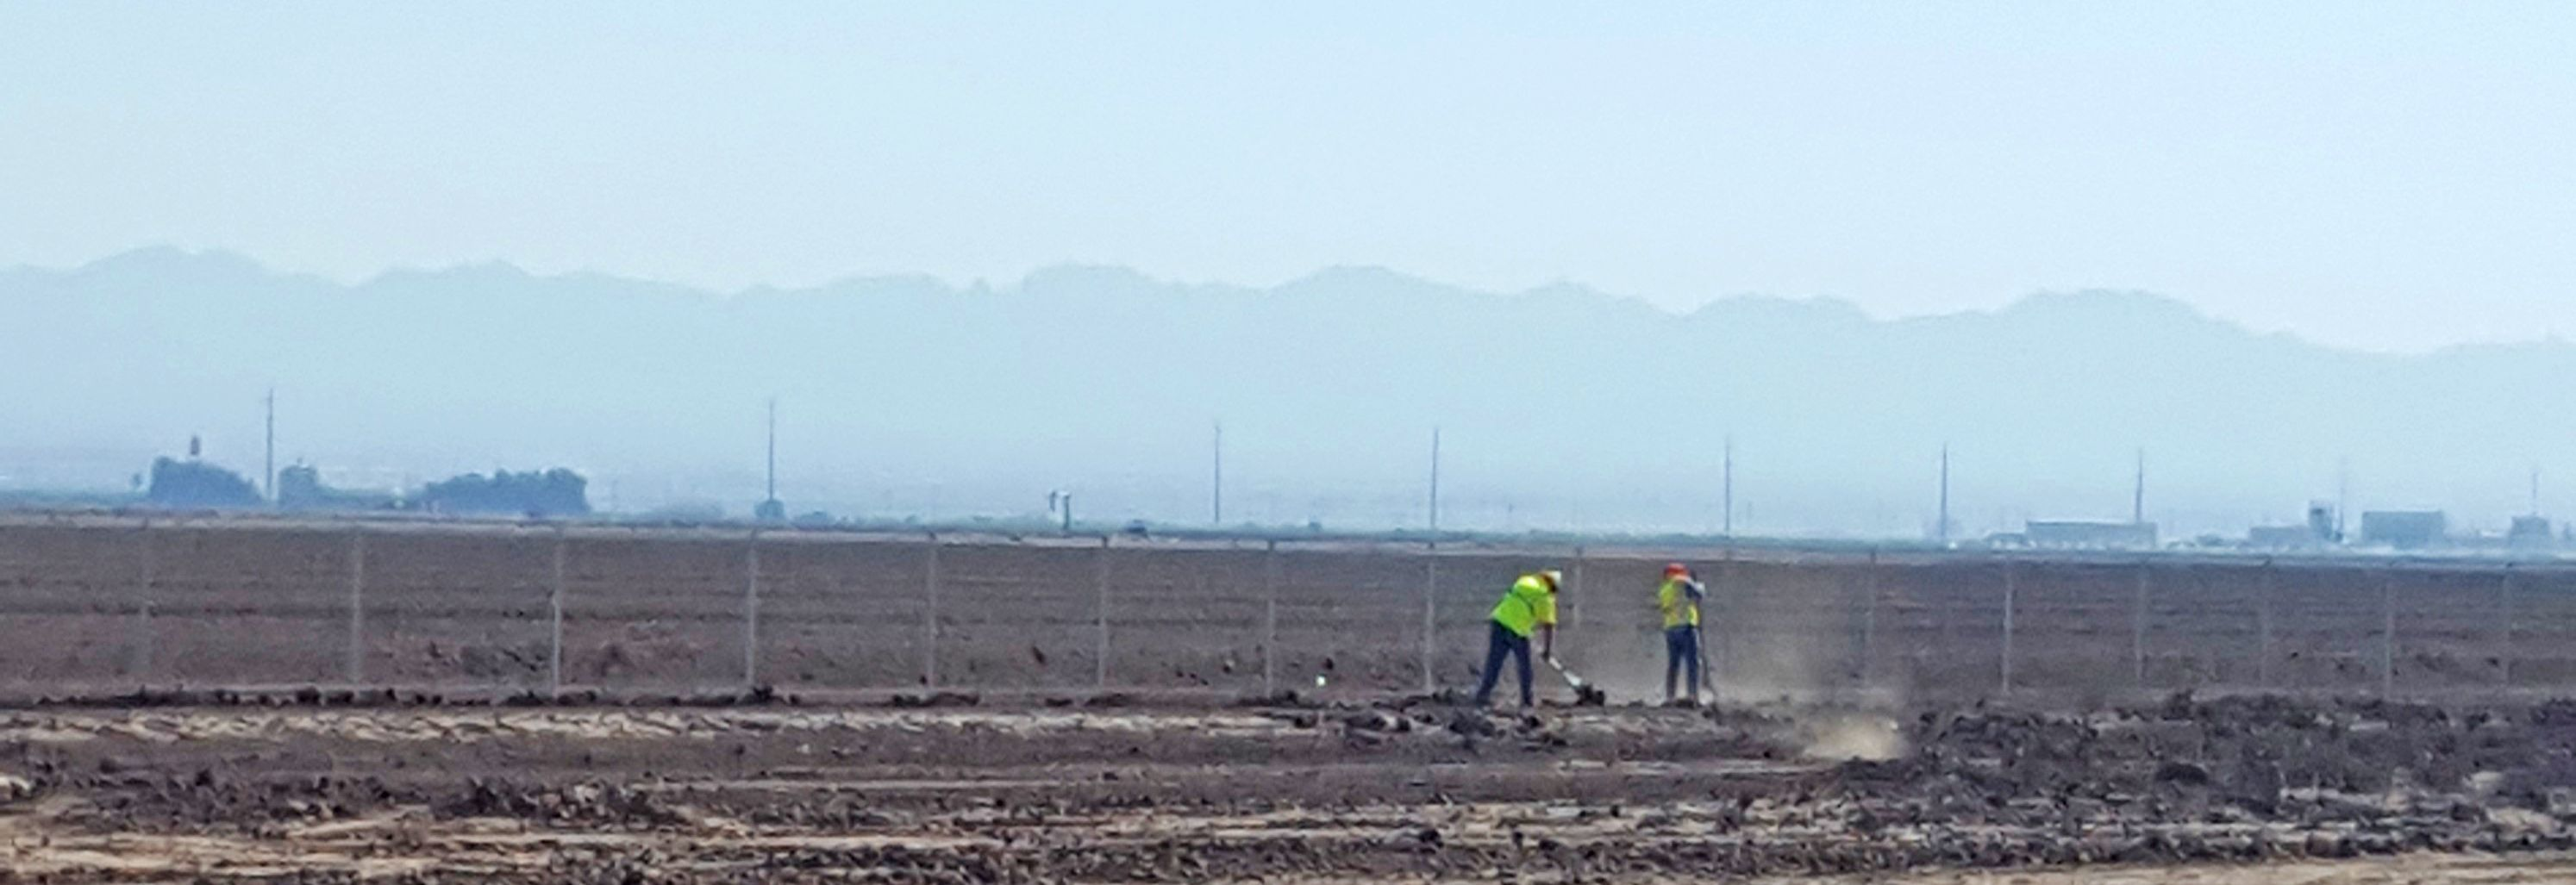 Solar Frontier Americas Announces Solar Projects Totaling 107 MWp Begin Construction